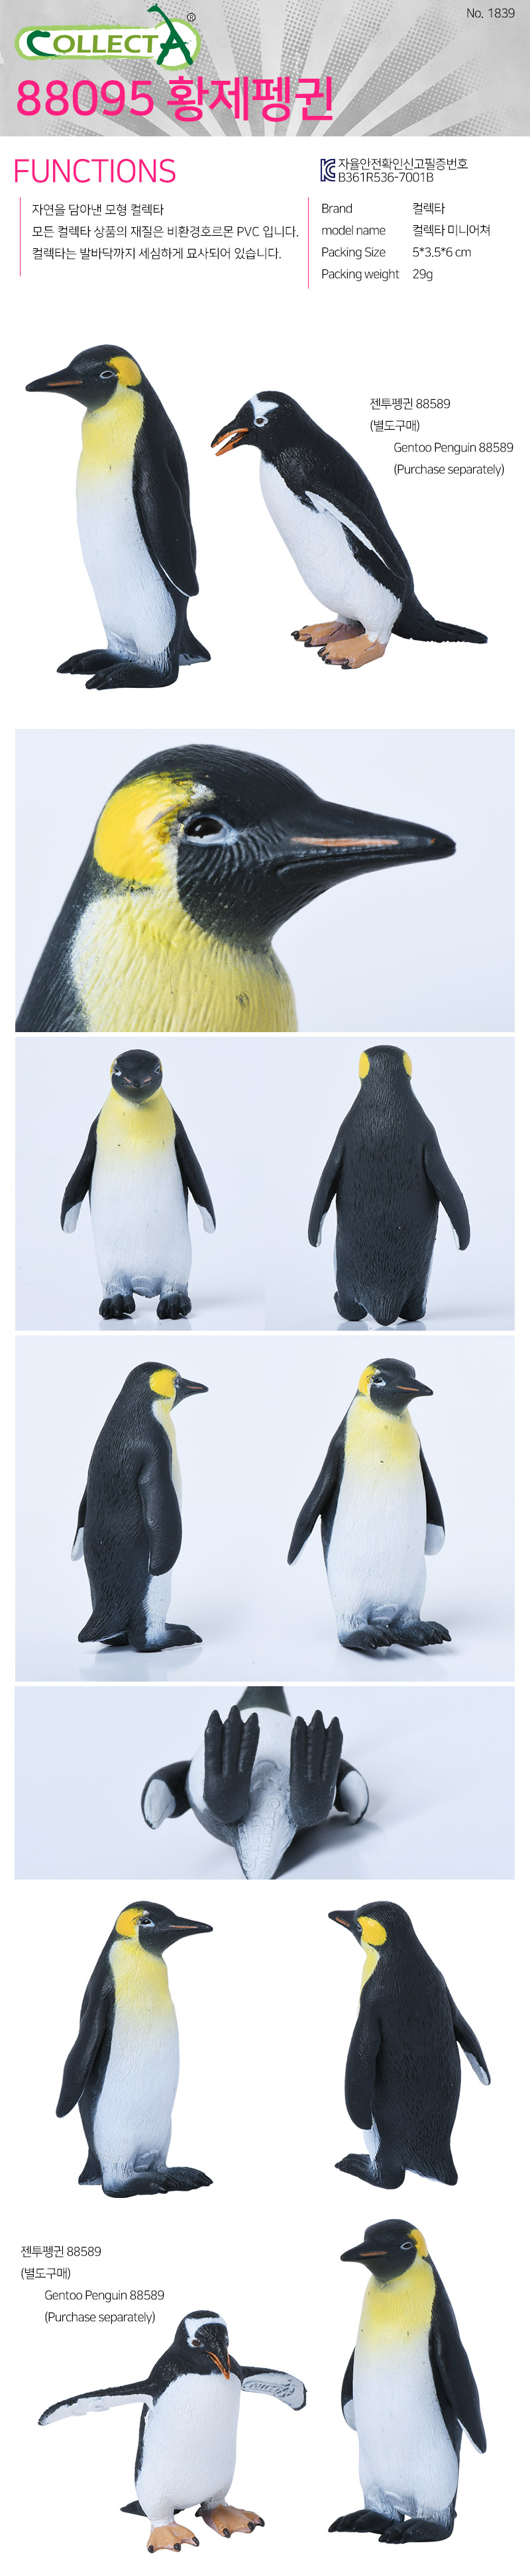 EMPEROR PENGUIN SEALIFE MODEL by COLLECTA 88095 *NEW WITH TAG*